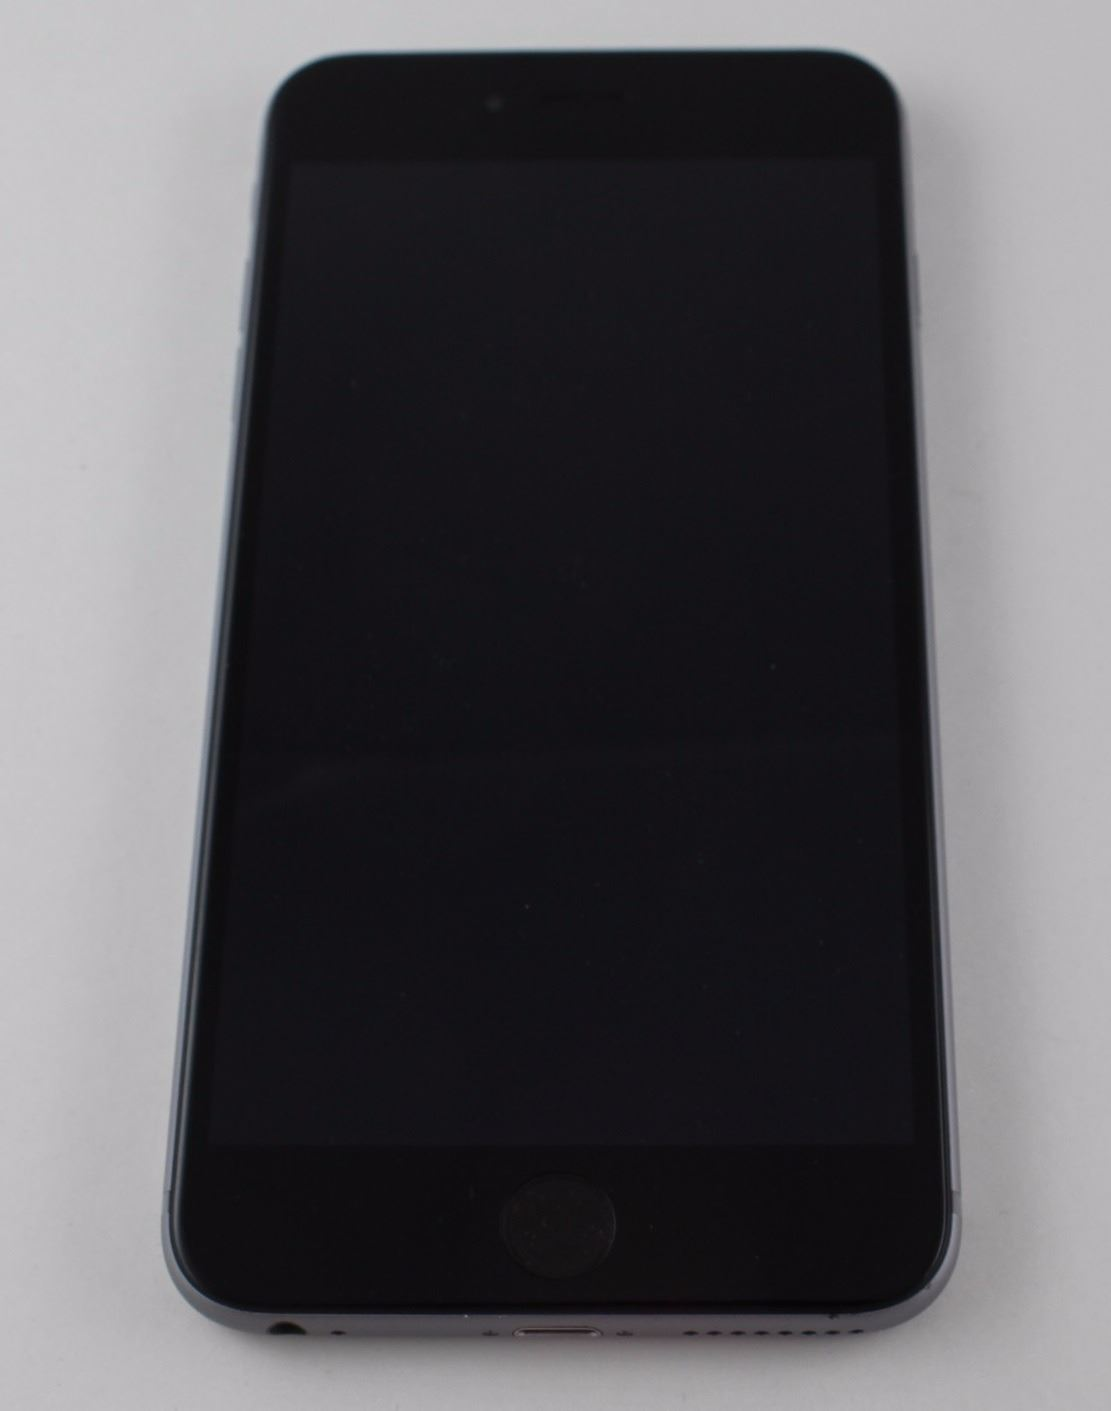 Apple Iphone 6 64gb Color Space Grey Unlocked And Refurbished Image 1